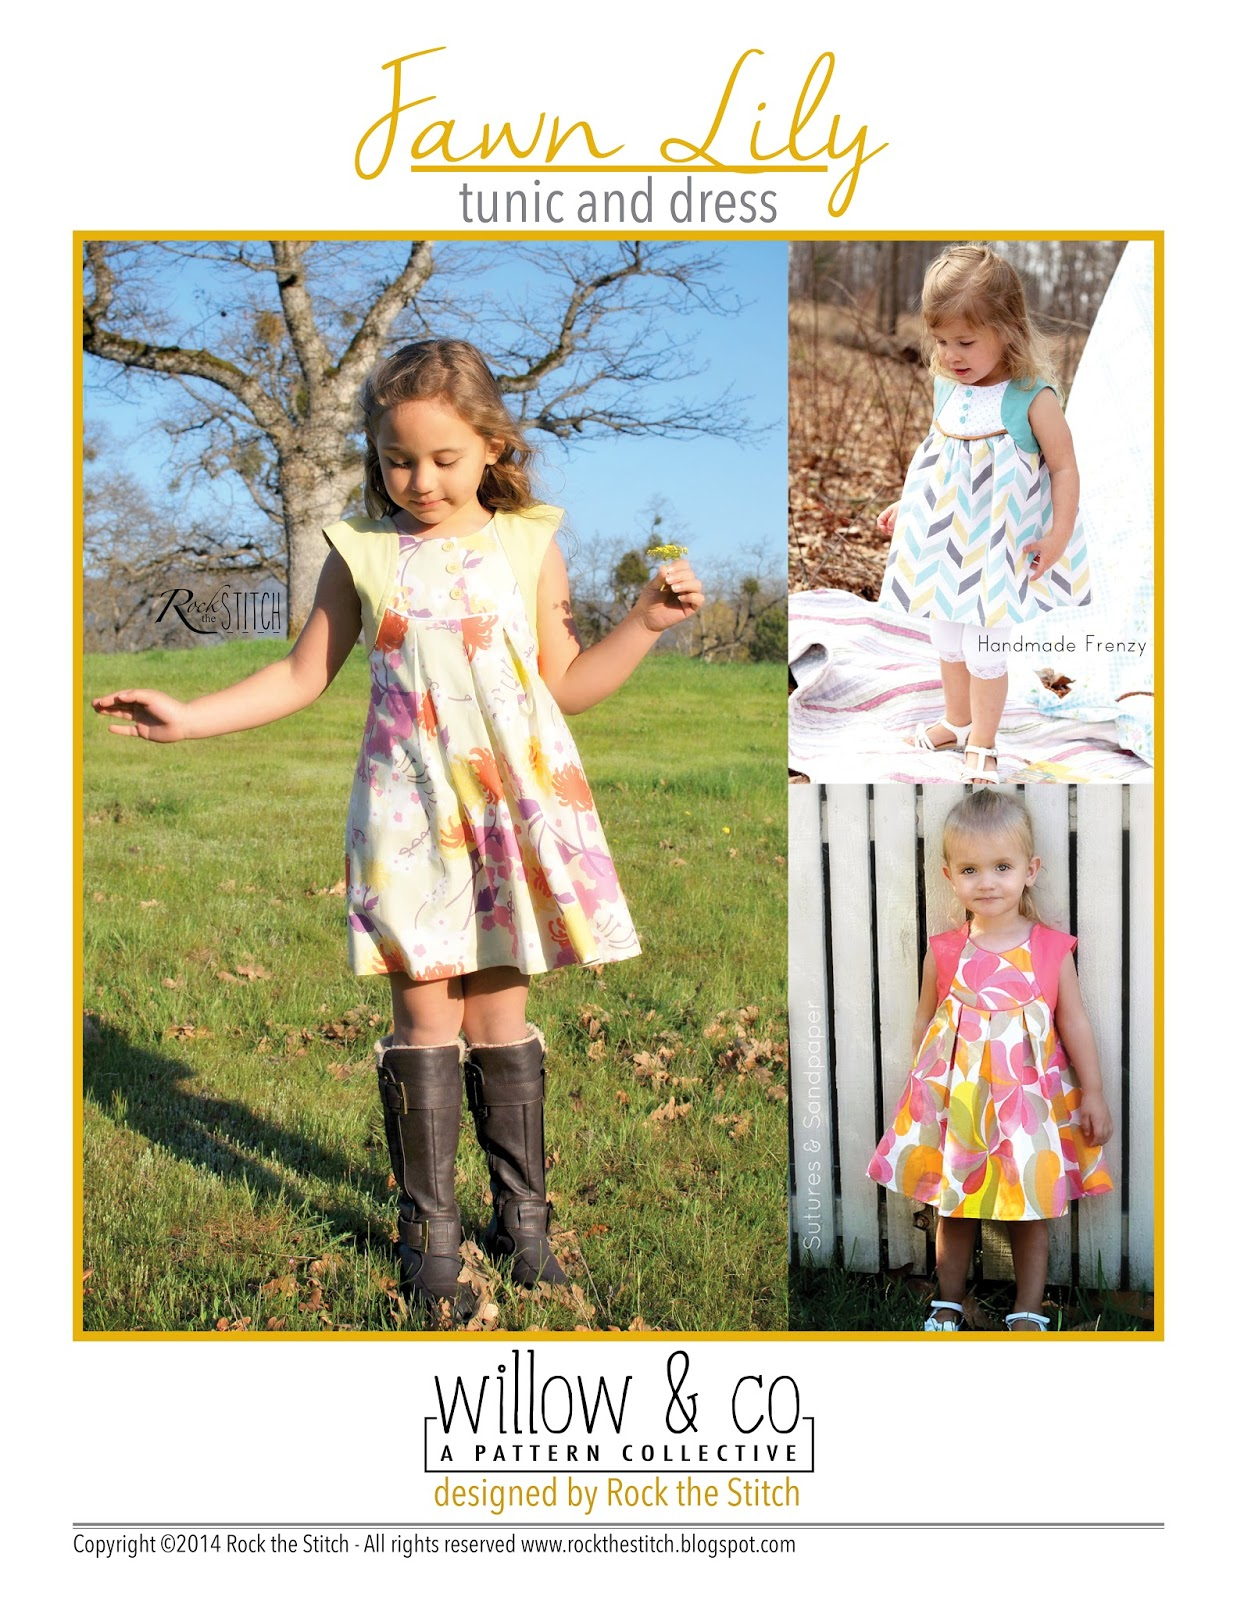 http://www.willowandcopatterns.com/shop/fawn-lily-tunic-dress/